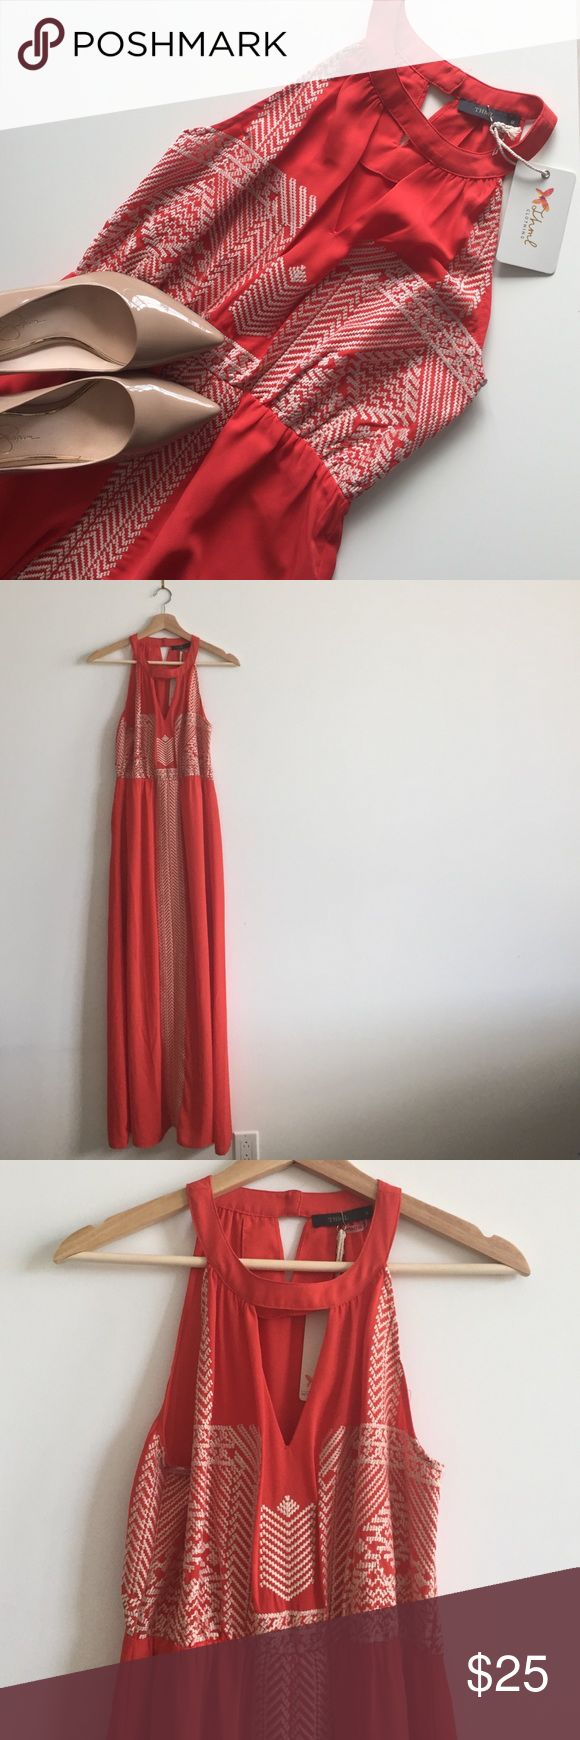 THML embroidered maxi dress Beautiful orange maxi with embroidered detail. Lined skirt. That perfect piece to complete your vacation wardrobe! New with tags. THML Dresses Maxi